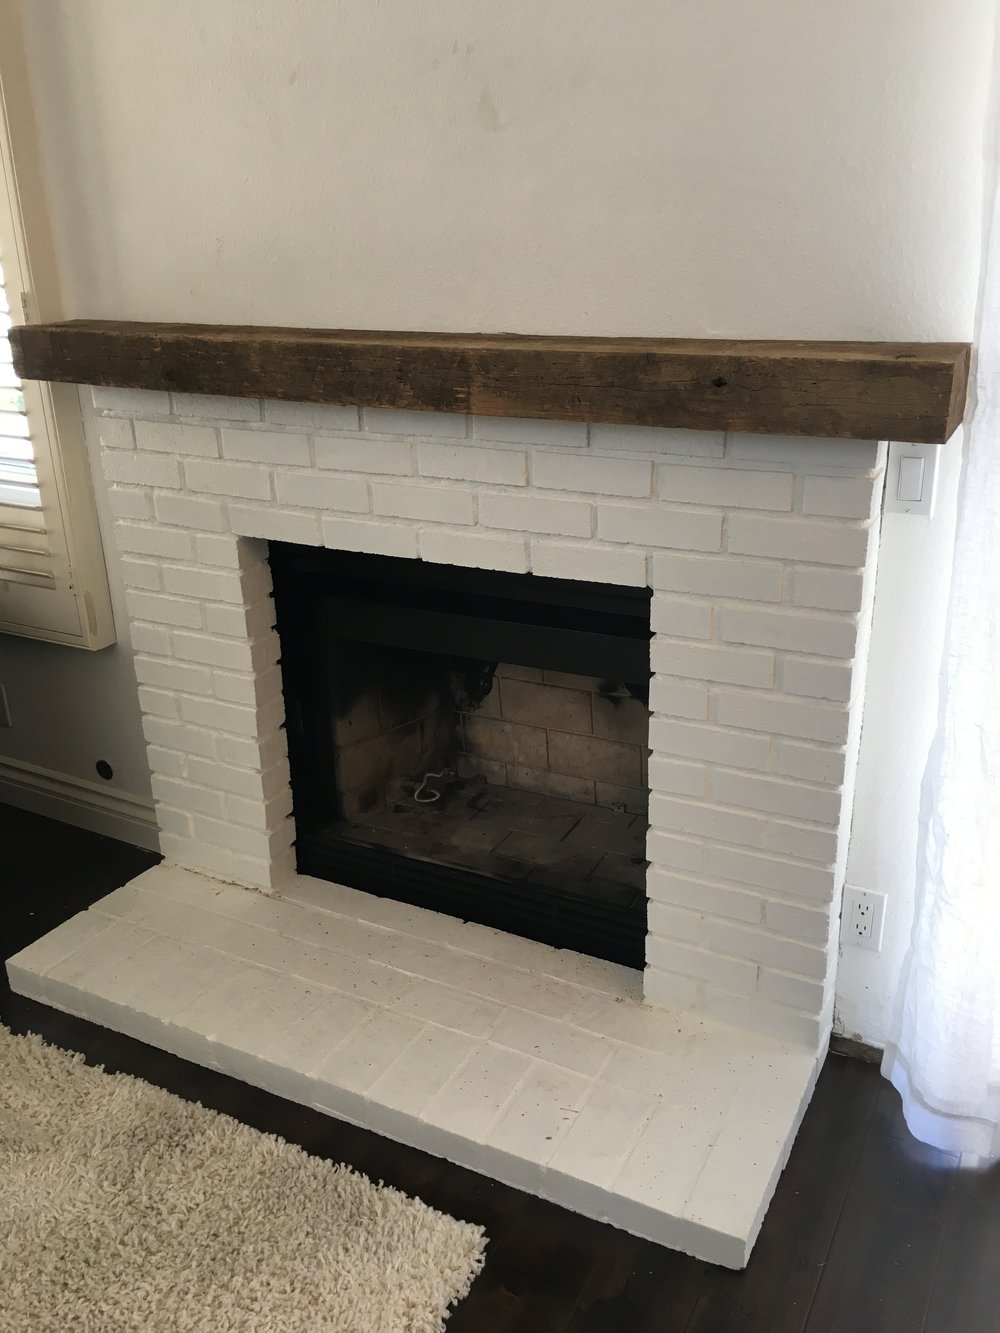 U.S. Reclaimed beam used to create a beautiful mantel piece.